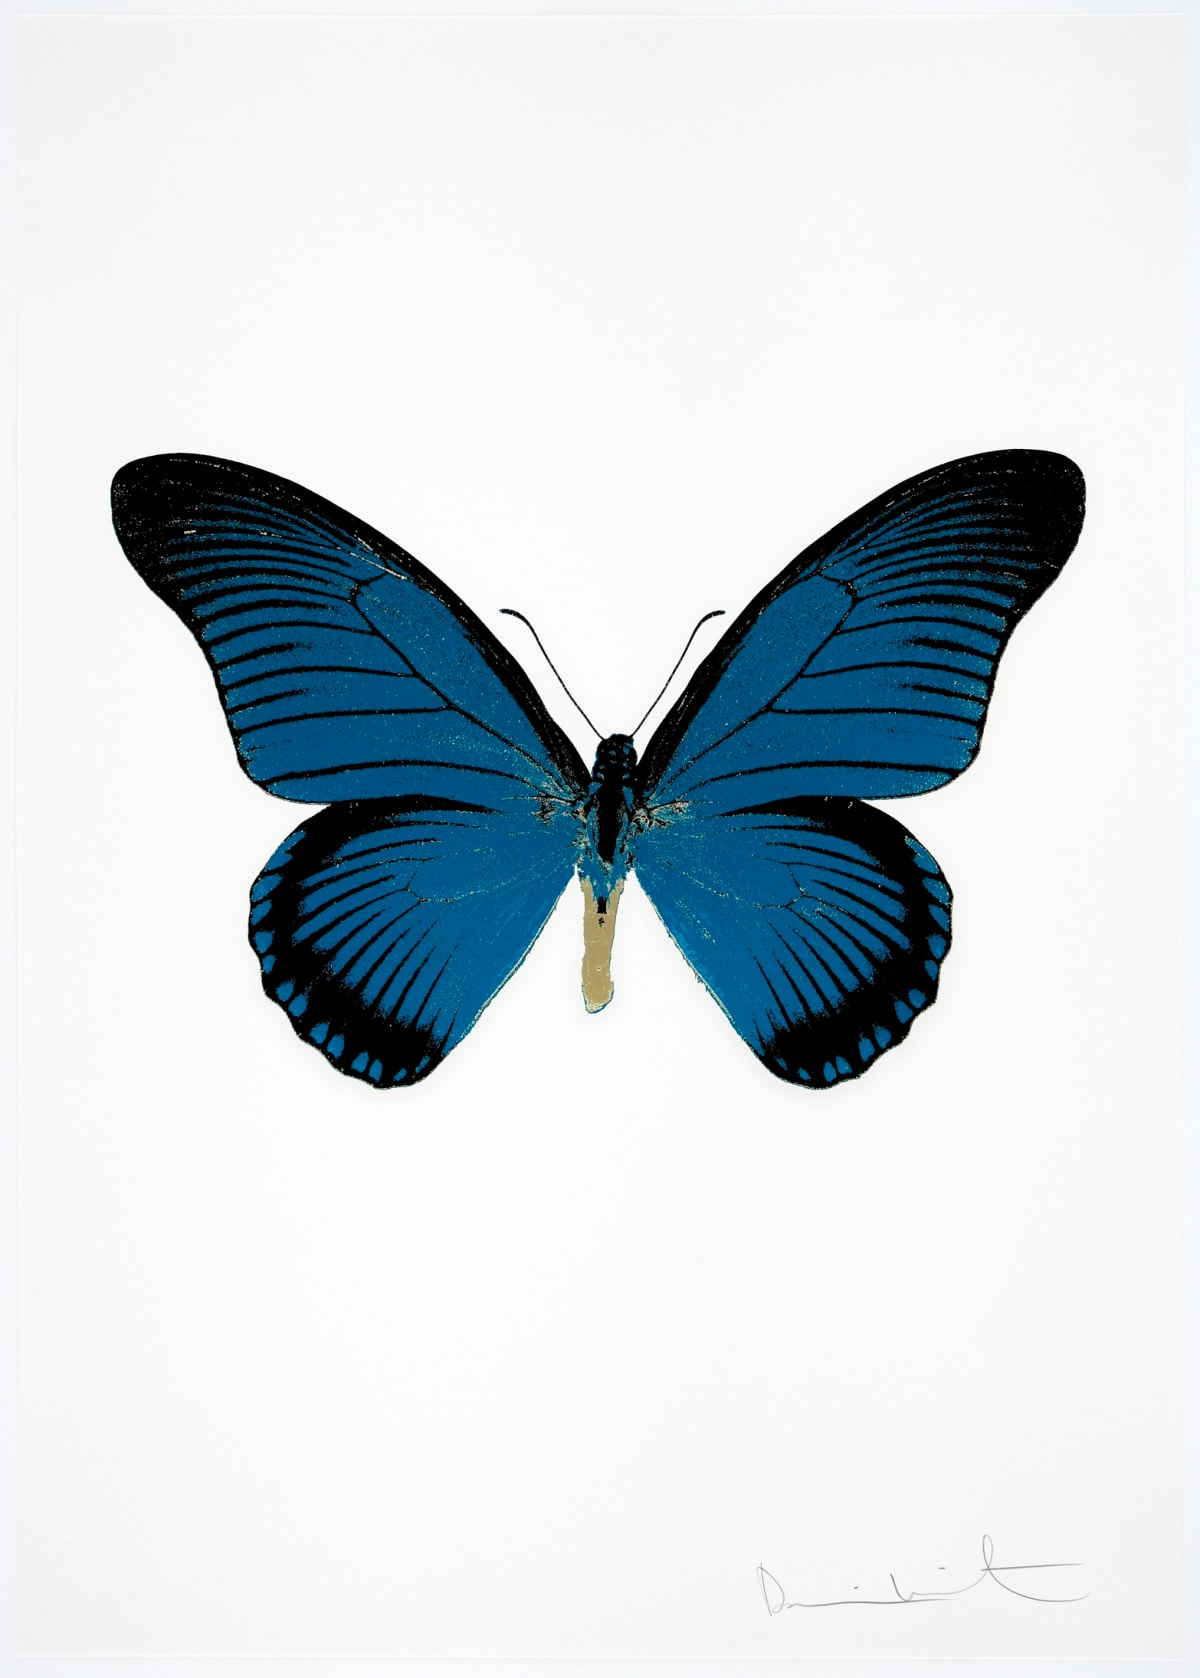 Damien Hirst The Souls IV Turquoise/Raven Black/Cool Gold, 2010 3 colour foil block on 300gsm Arches 88 archival paper. Signed and numbered. Published by Paul Stolper and Other Criteria 72 x 51cm OC8054 / 1418-77 Edition of 15